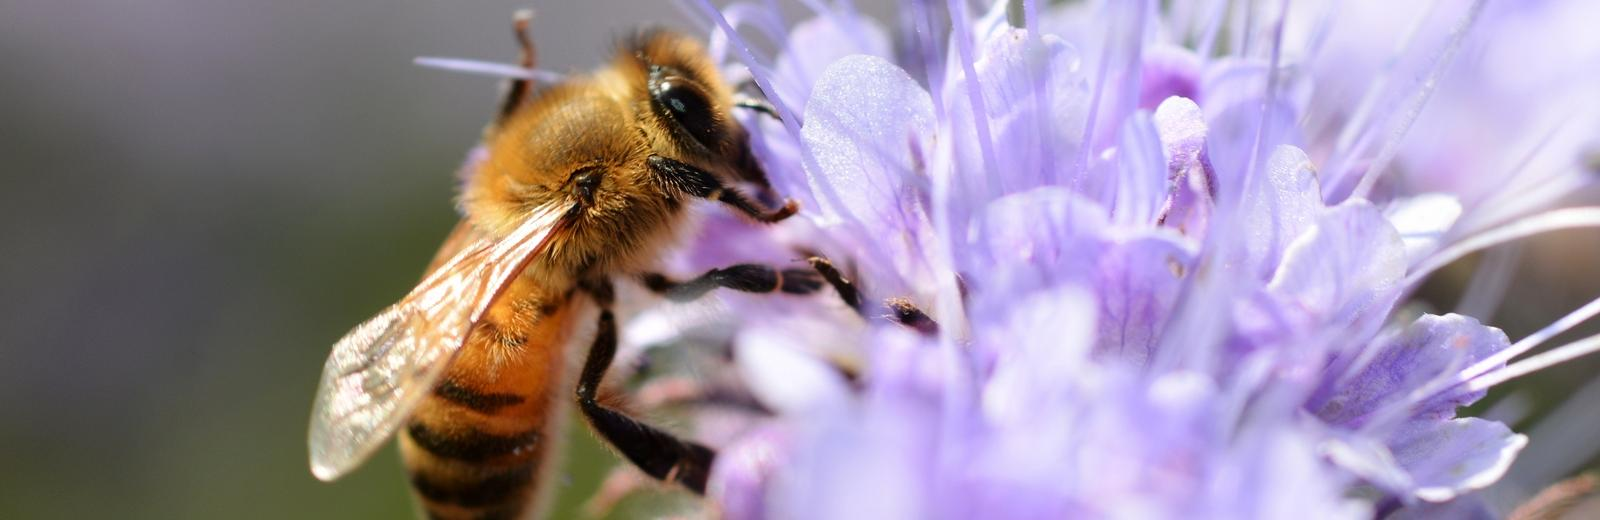 Swiss research for sick bees | Swiss Environment